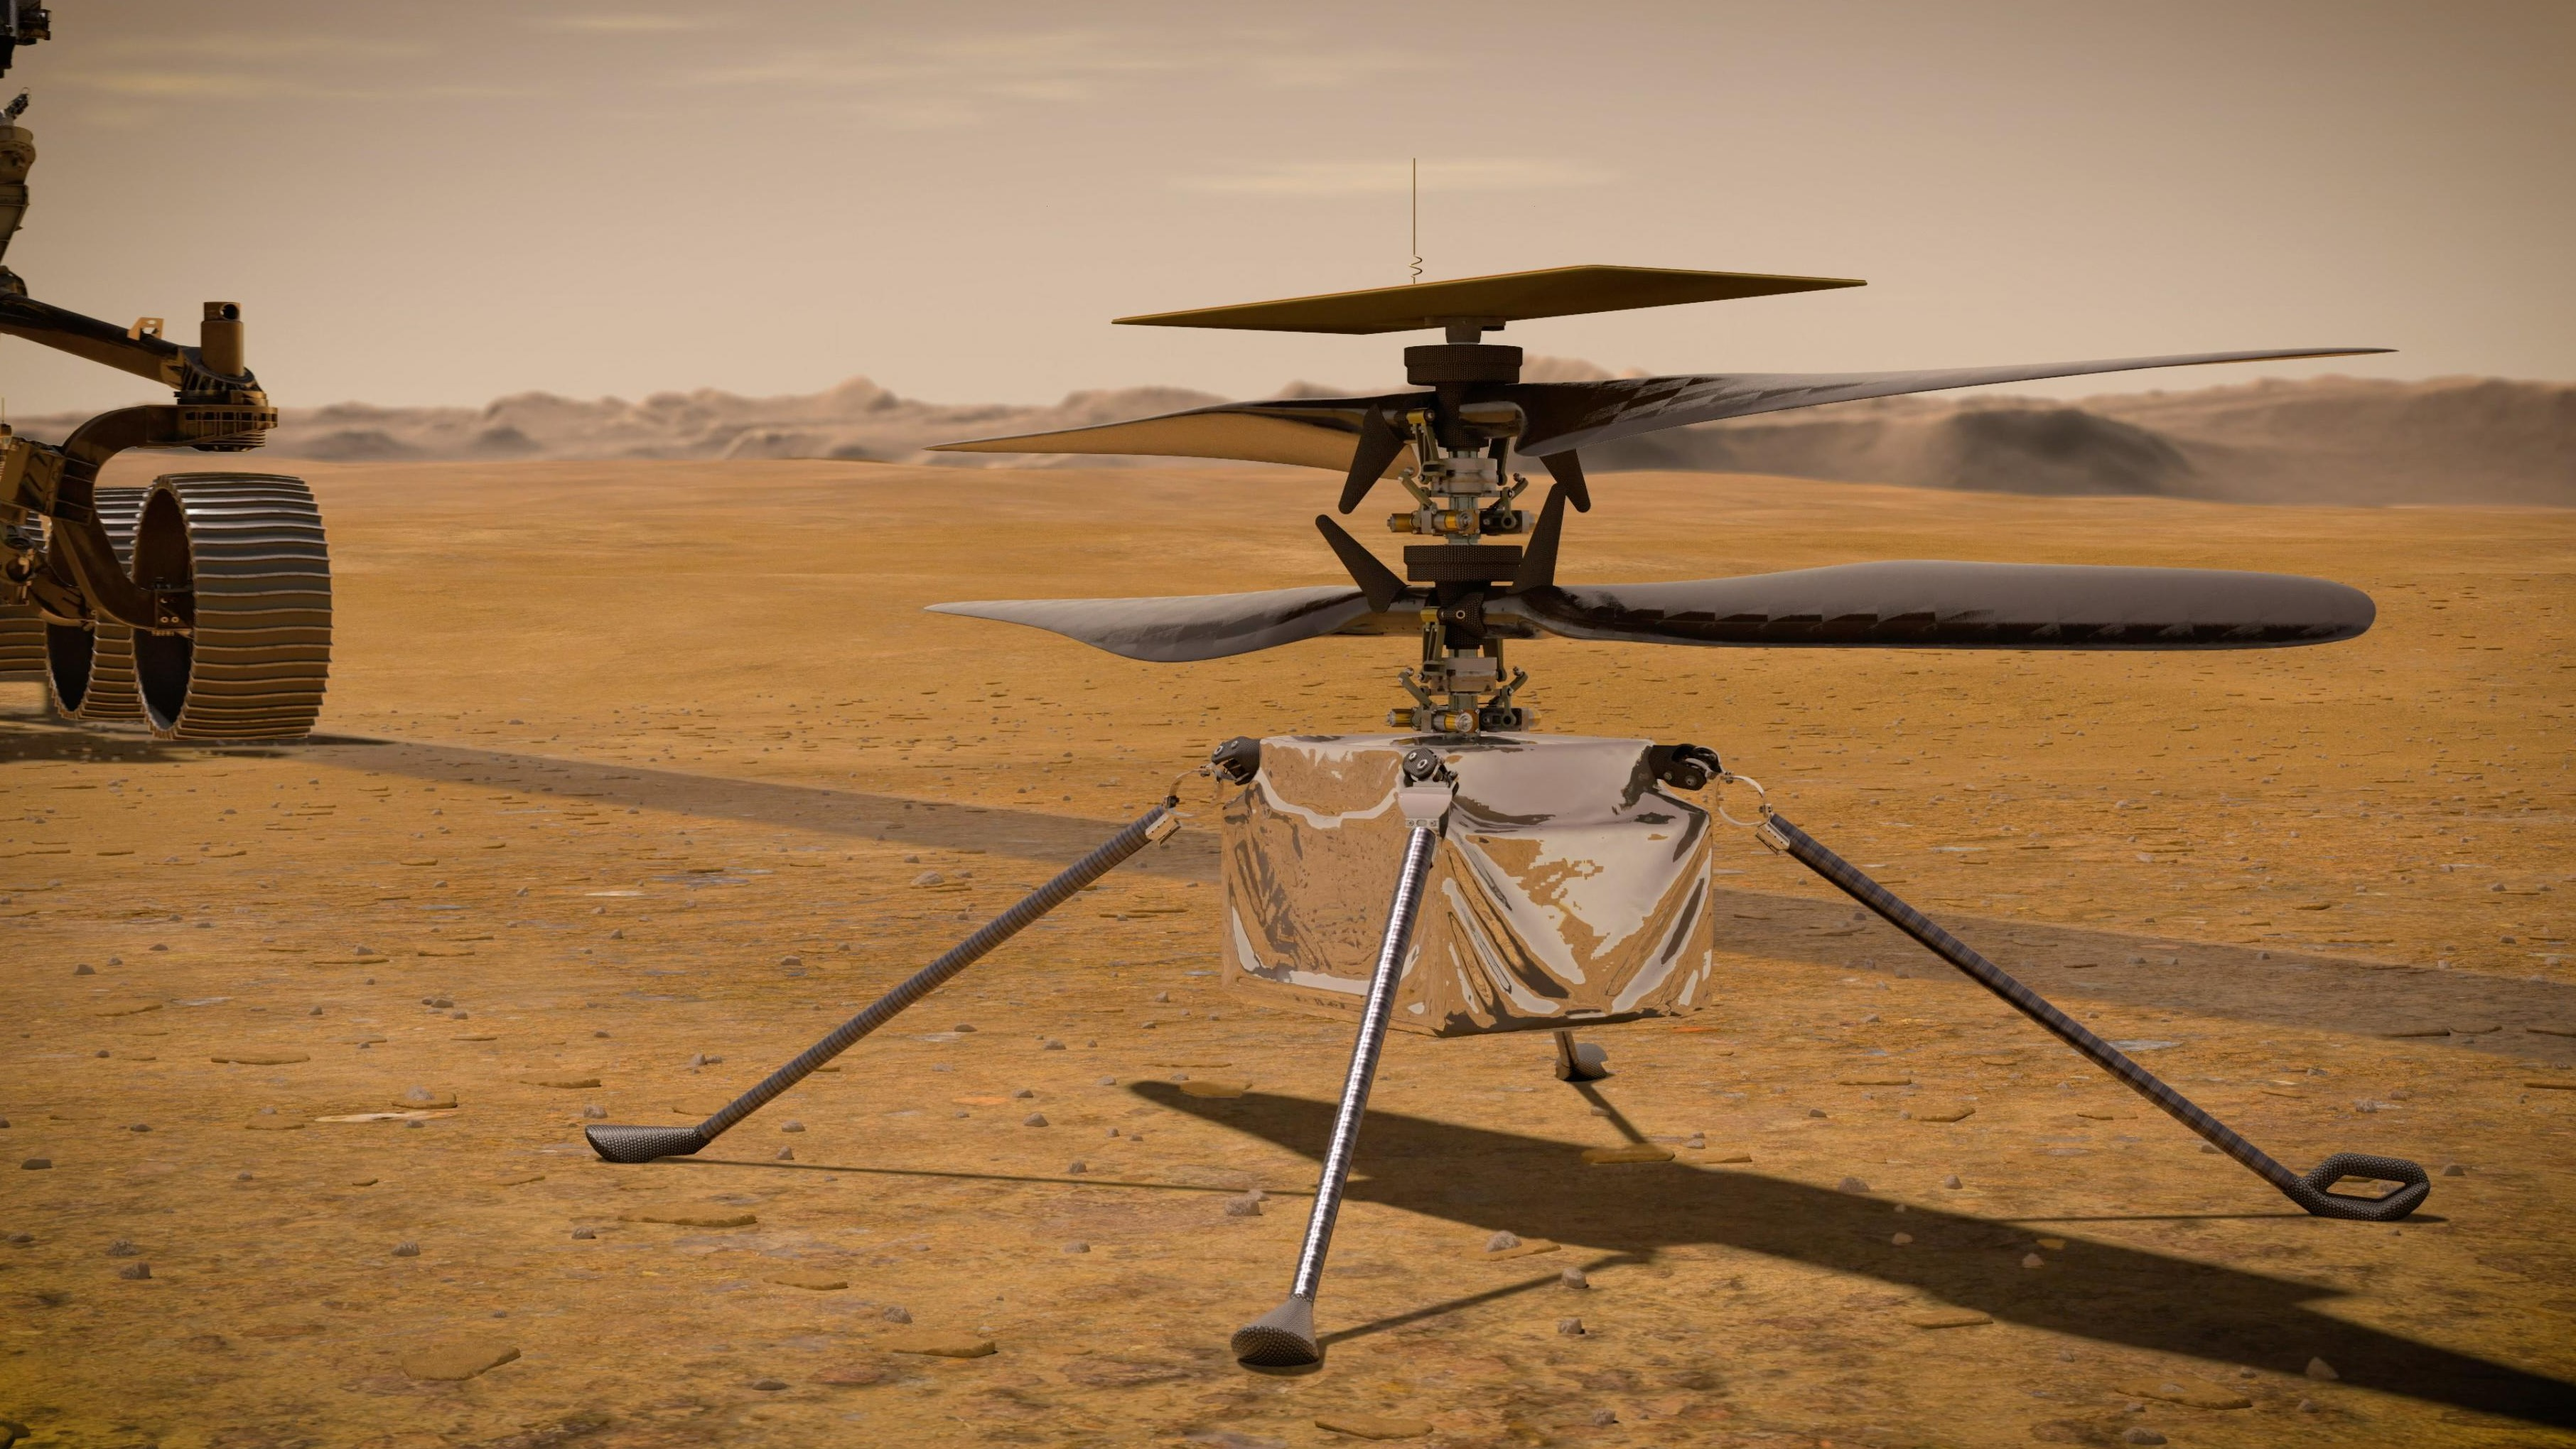 An illustration of the Ingenuity helicopter on Mars